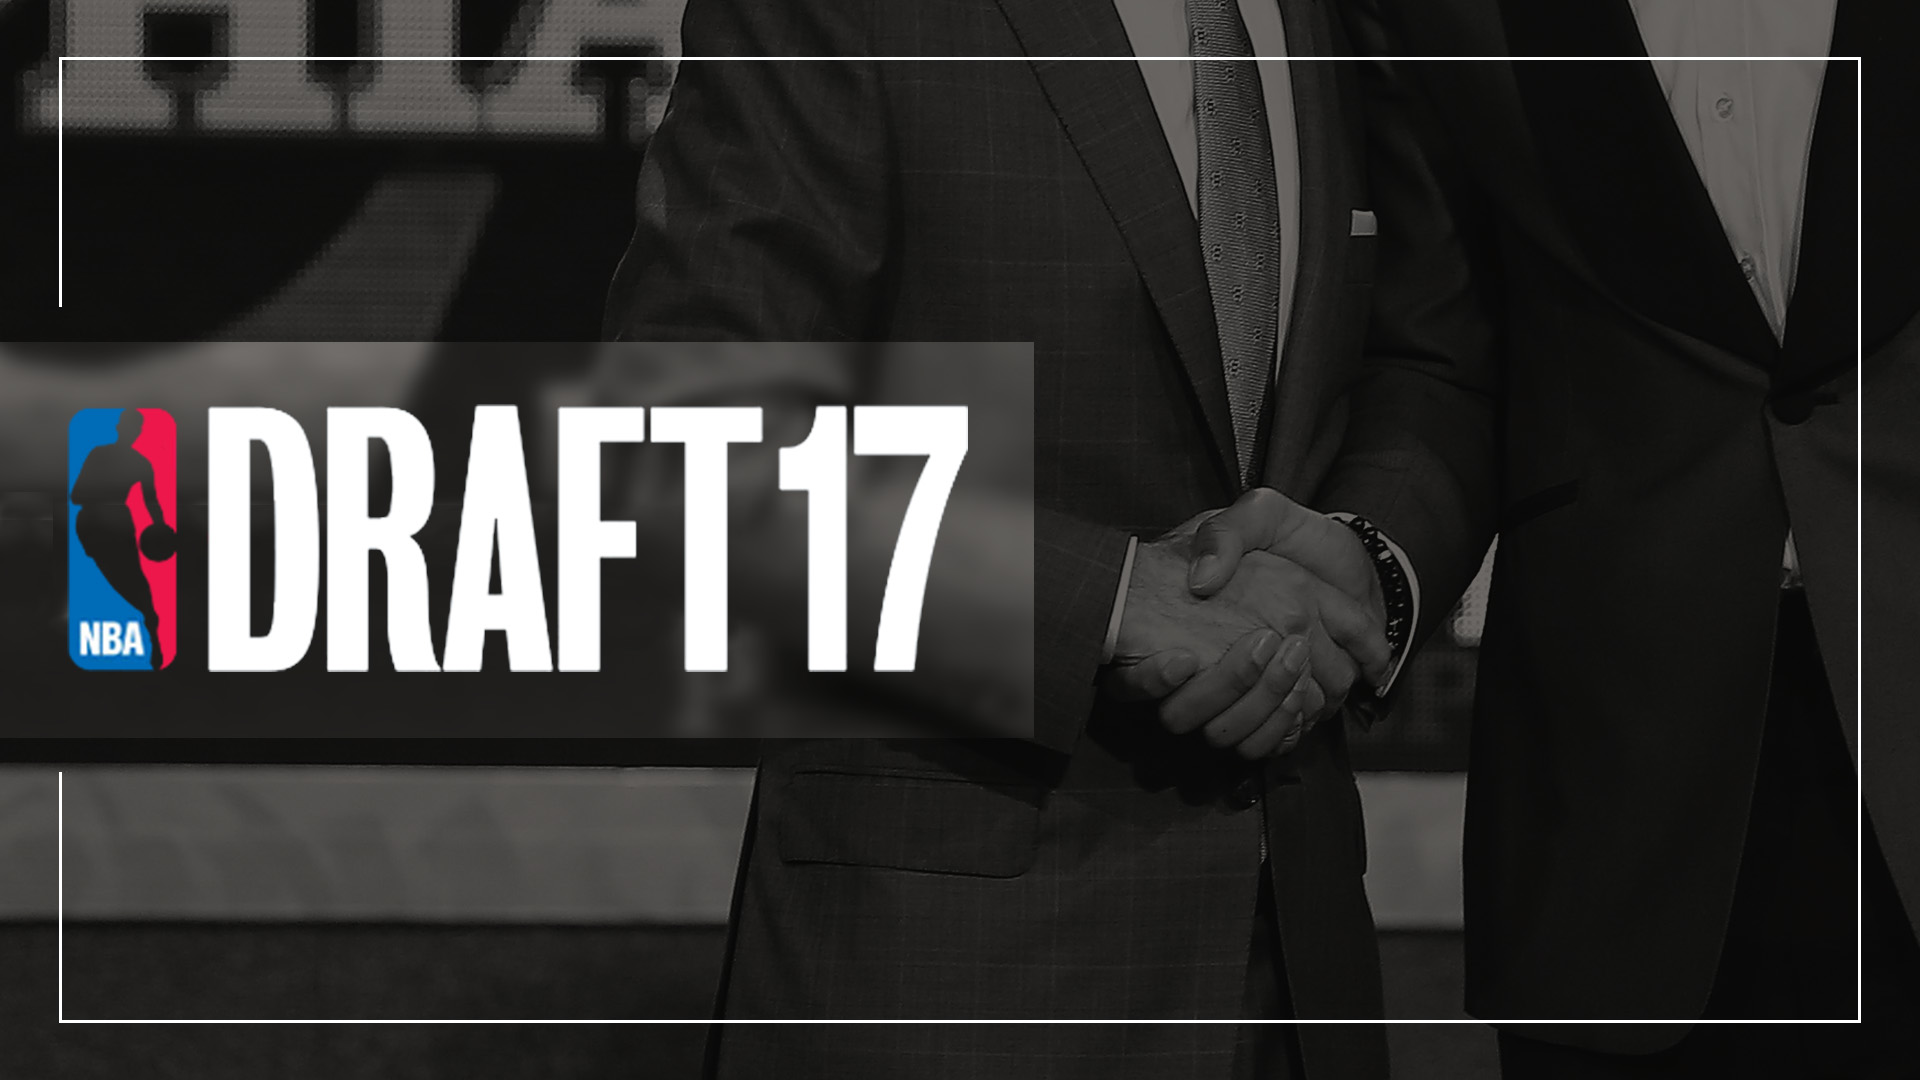 76ers select Markelle Fultz with No. 1 pick in draft